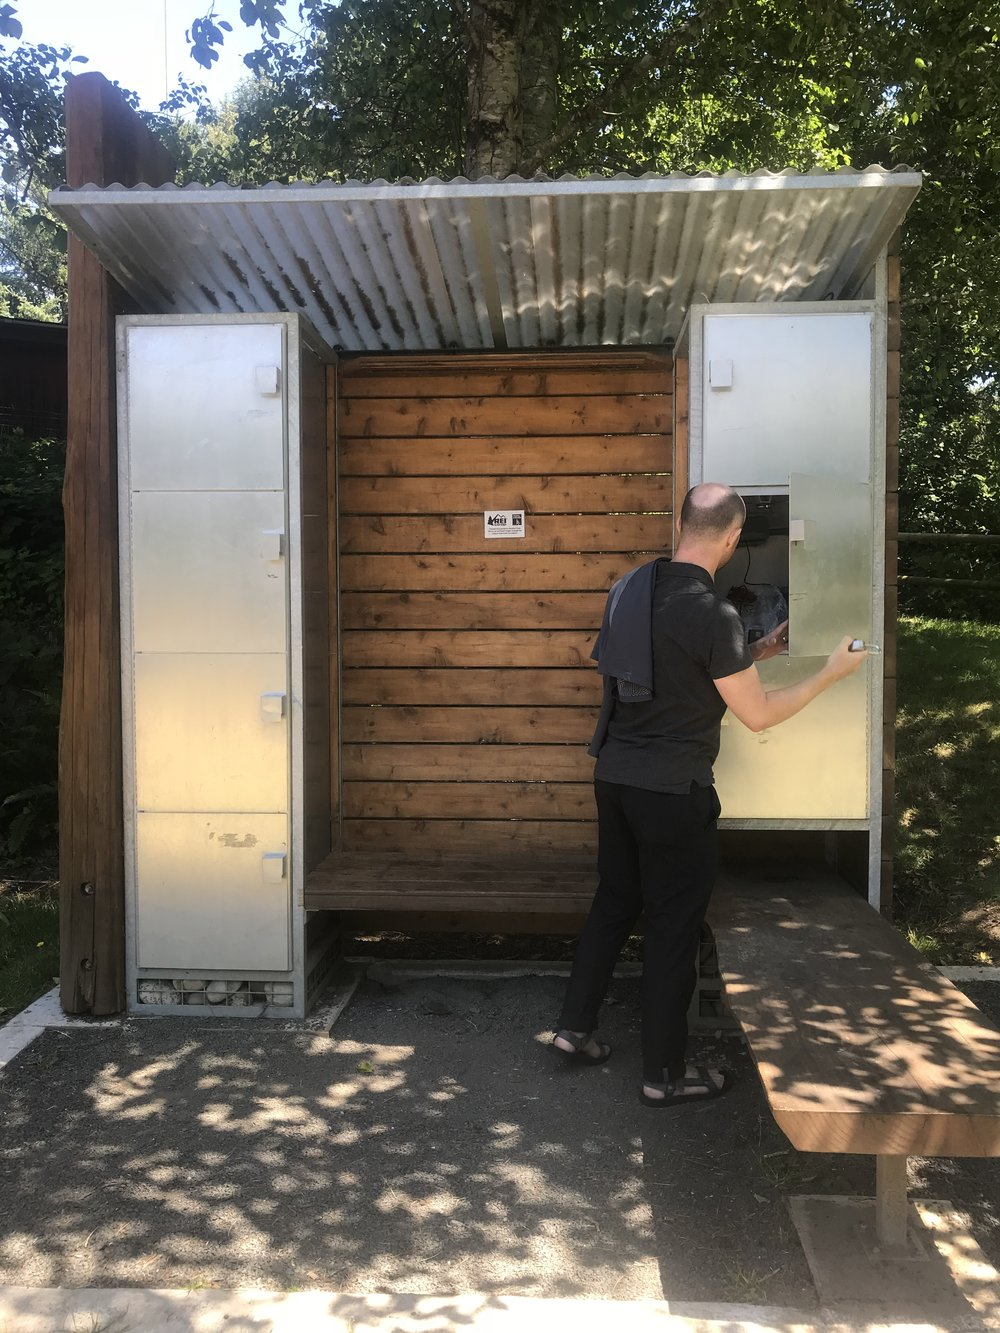 The fancy hiker/biker sites at Devil's Lake have lockers, which included an outlet inside for charging devices. We spend a lot of time trying to conserve our phone batteries and figuring out where we can charge them, so that was nice.